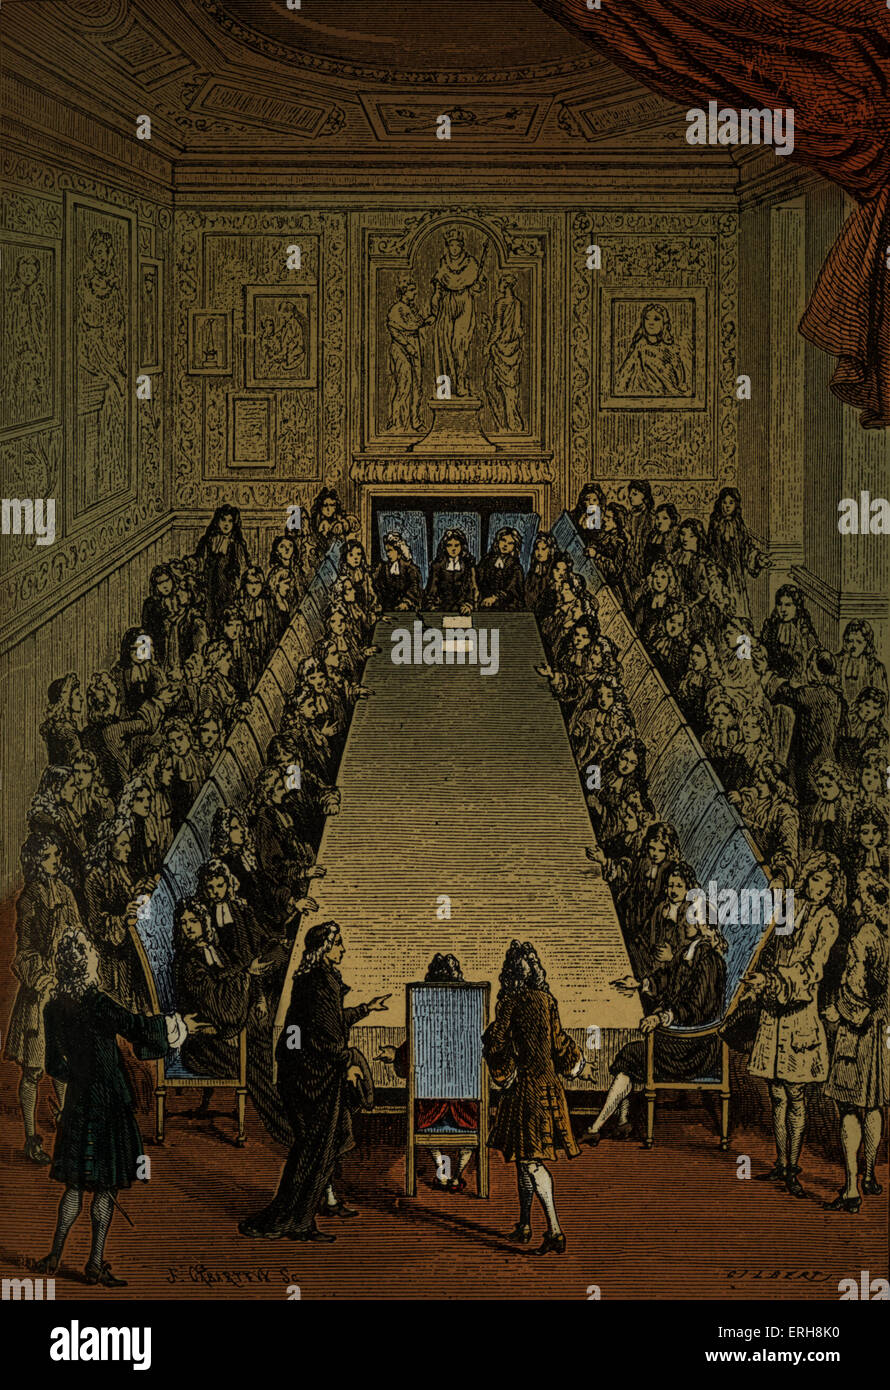 Meeting of French Academy / Académie Française - at the Louvre - 1714 - Stock Image